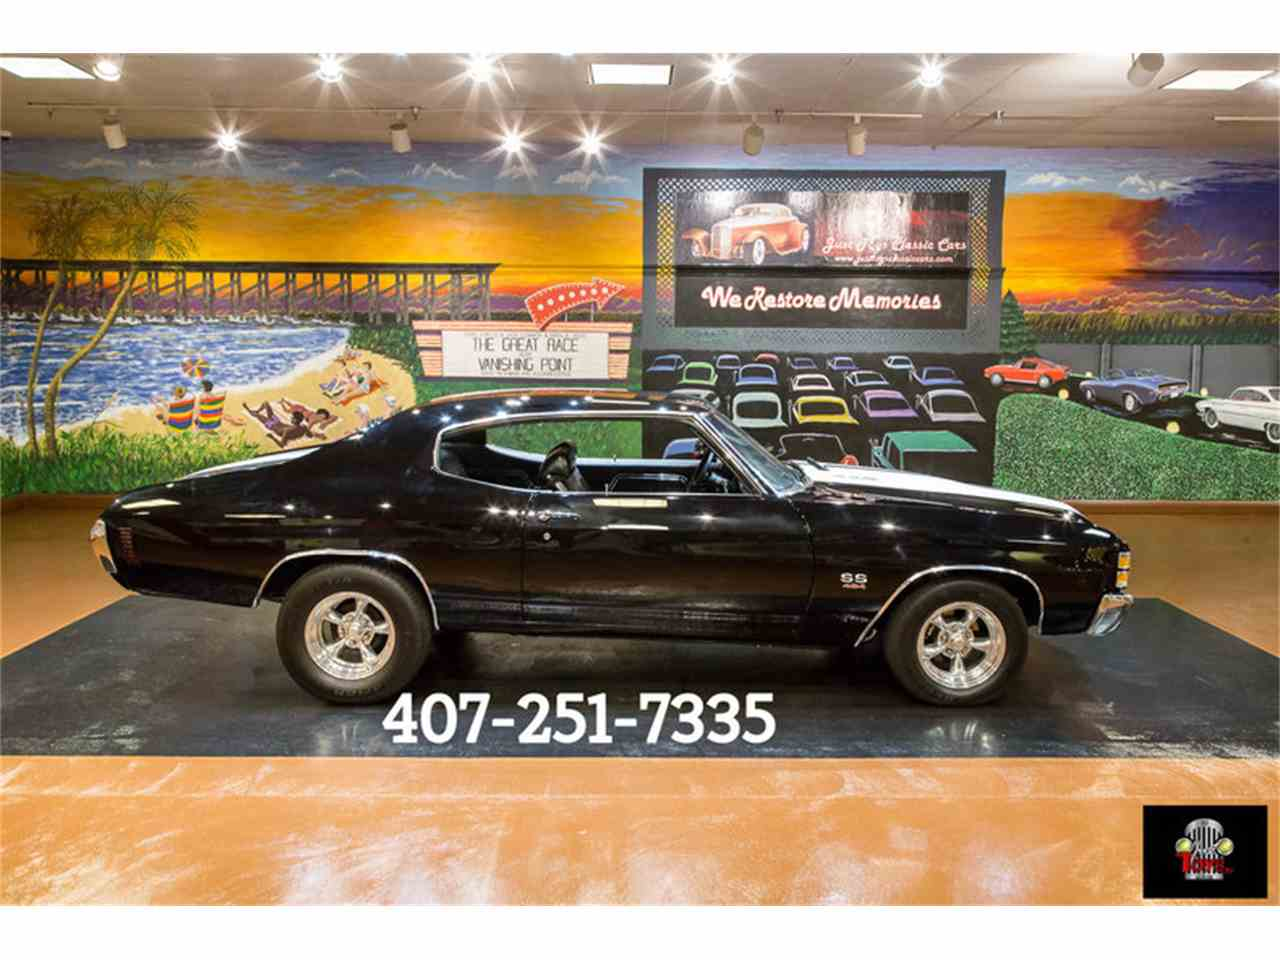 1971 Chevrolet Chevelle SS for Sale - CC-1001956